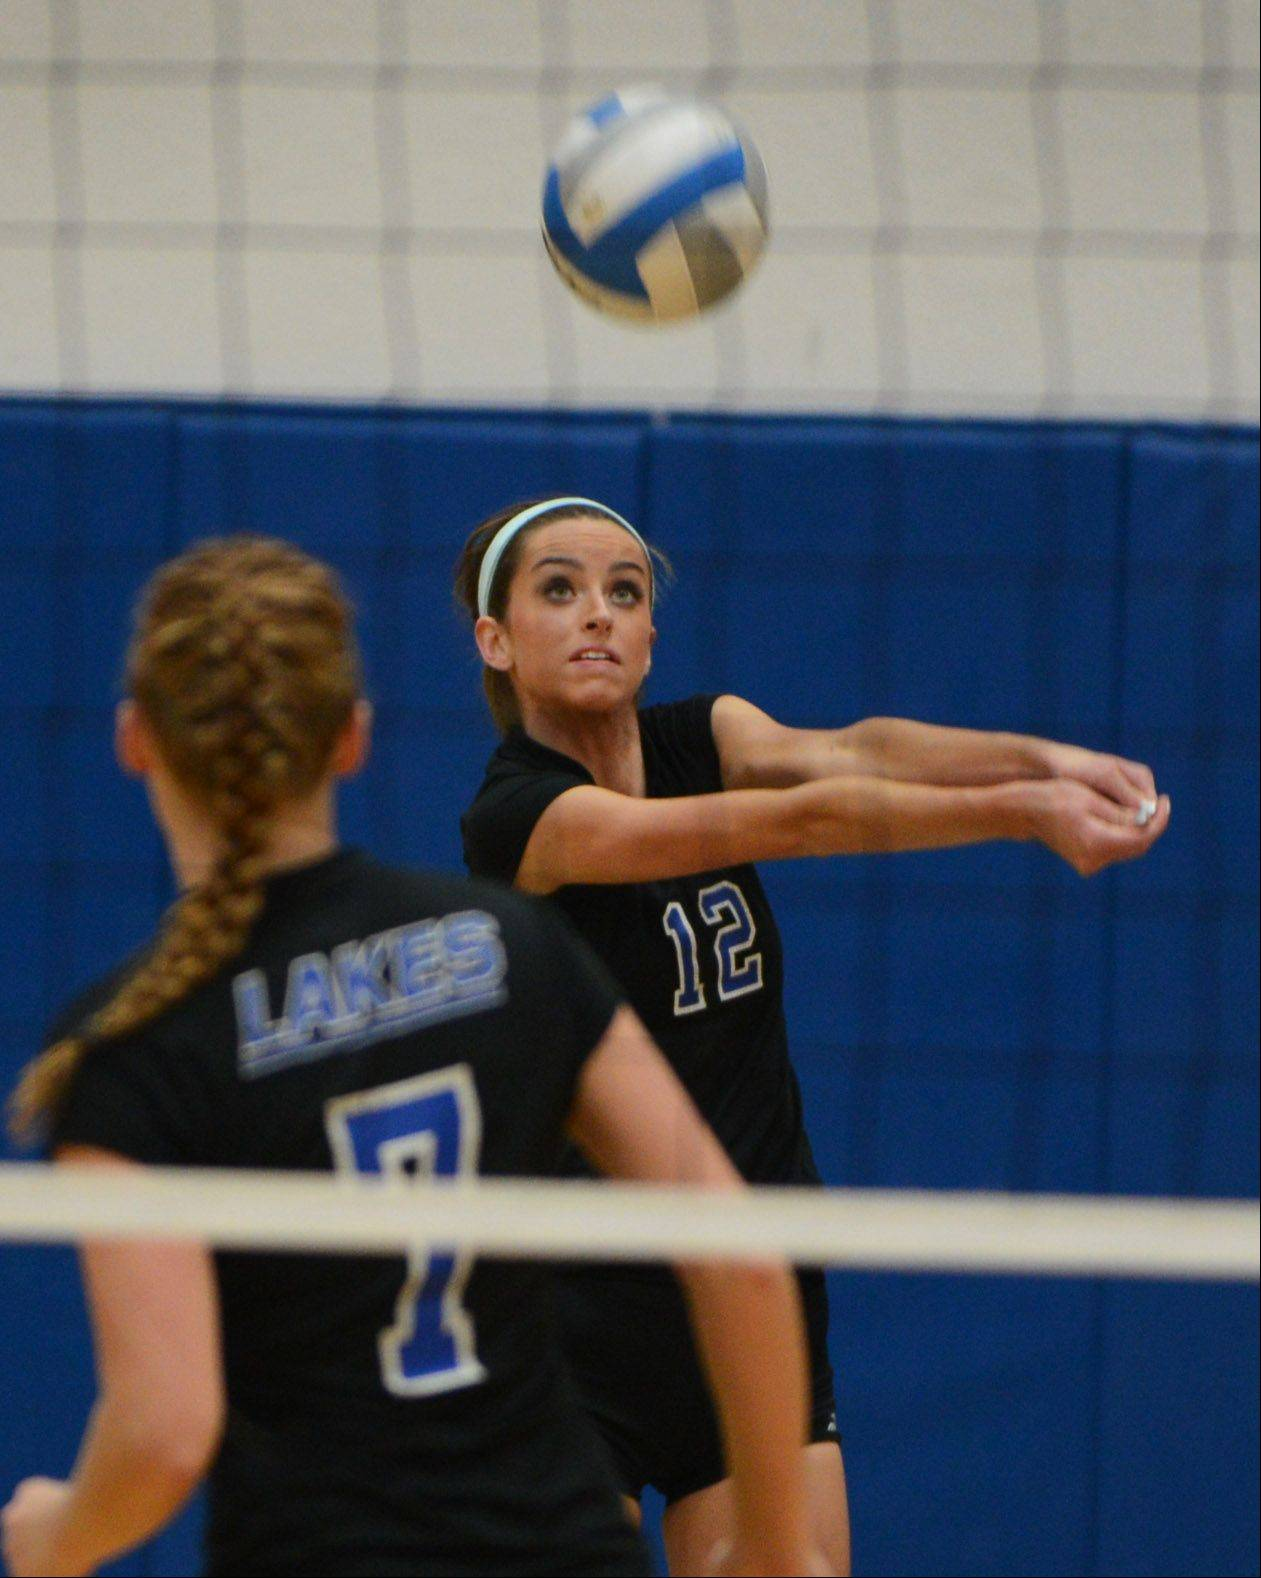 Lakes' Haley Halberg plays the ball during Wednesday night's volleyball game in Vernon Hills.